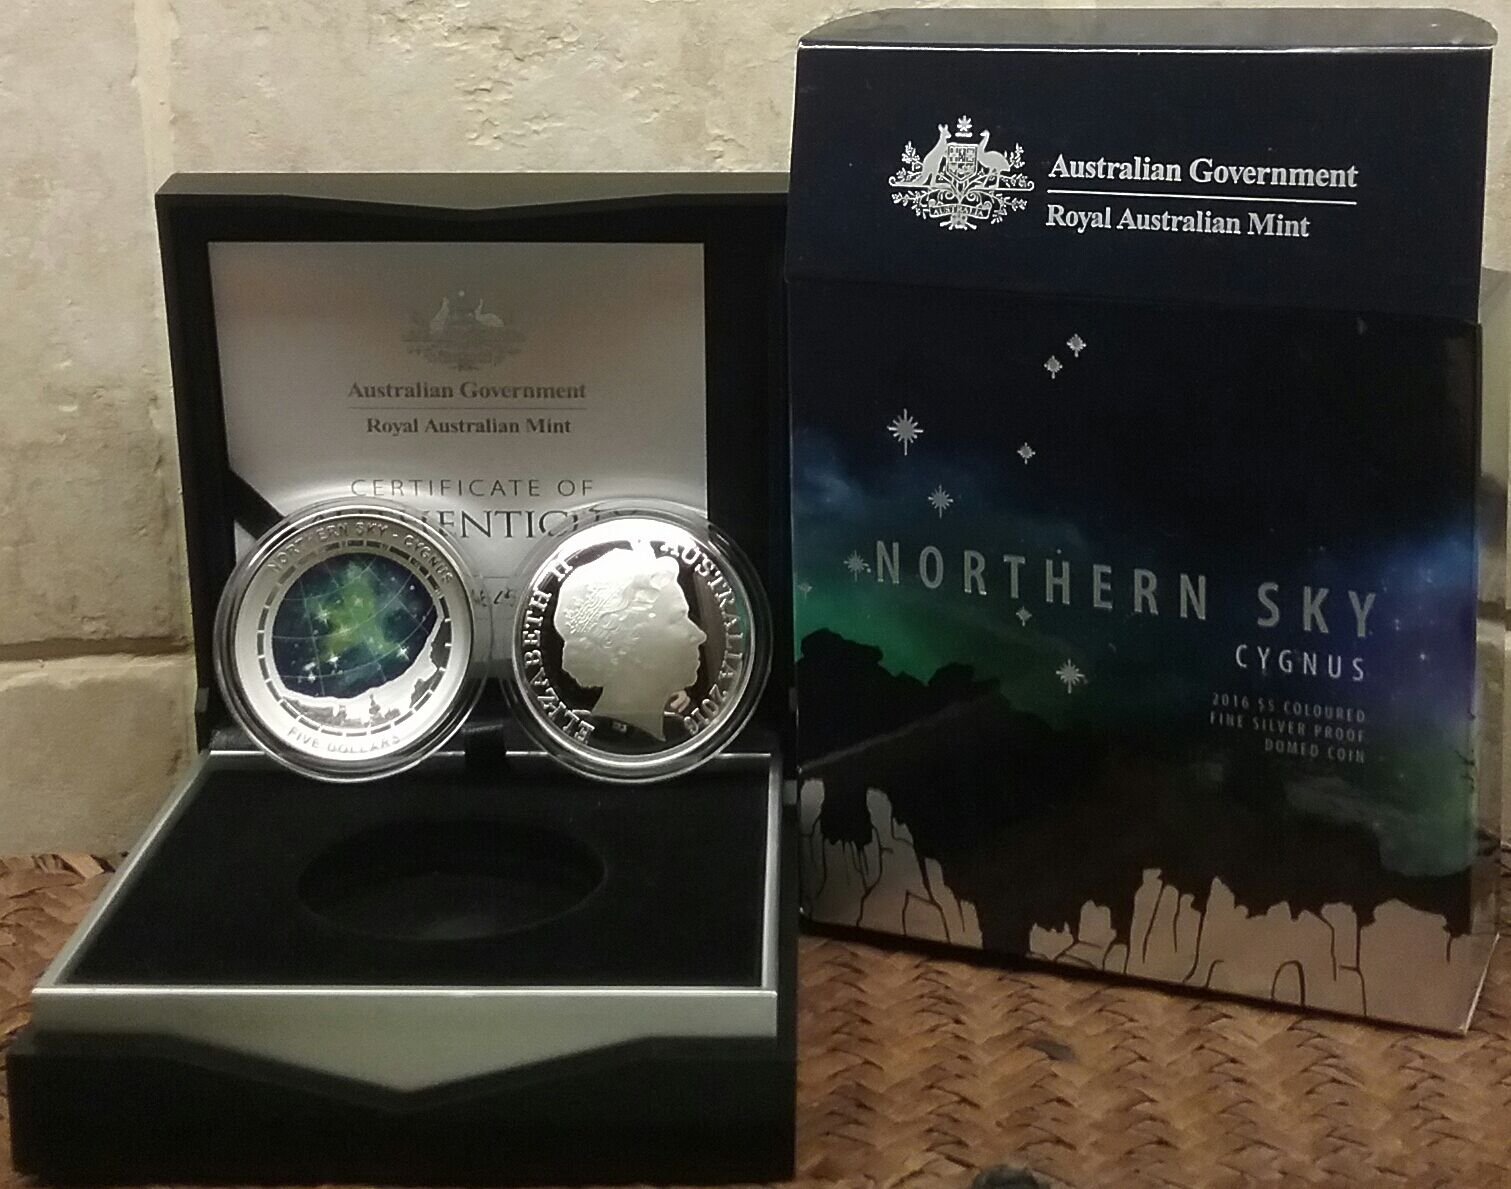 Northern sky cygnus 2016 1oz pure silver proof curved coin, mint sold 5000 out.